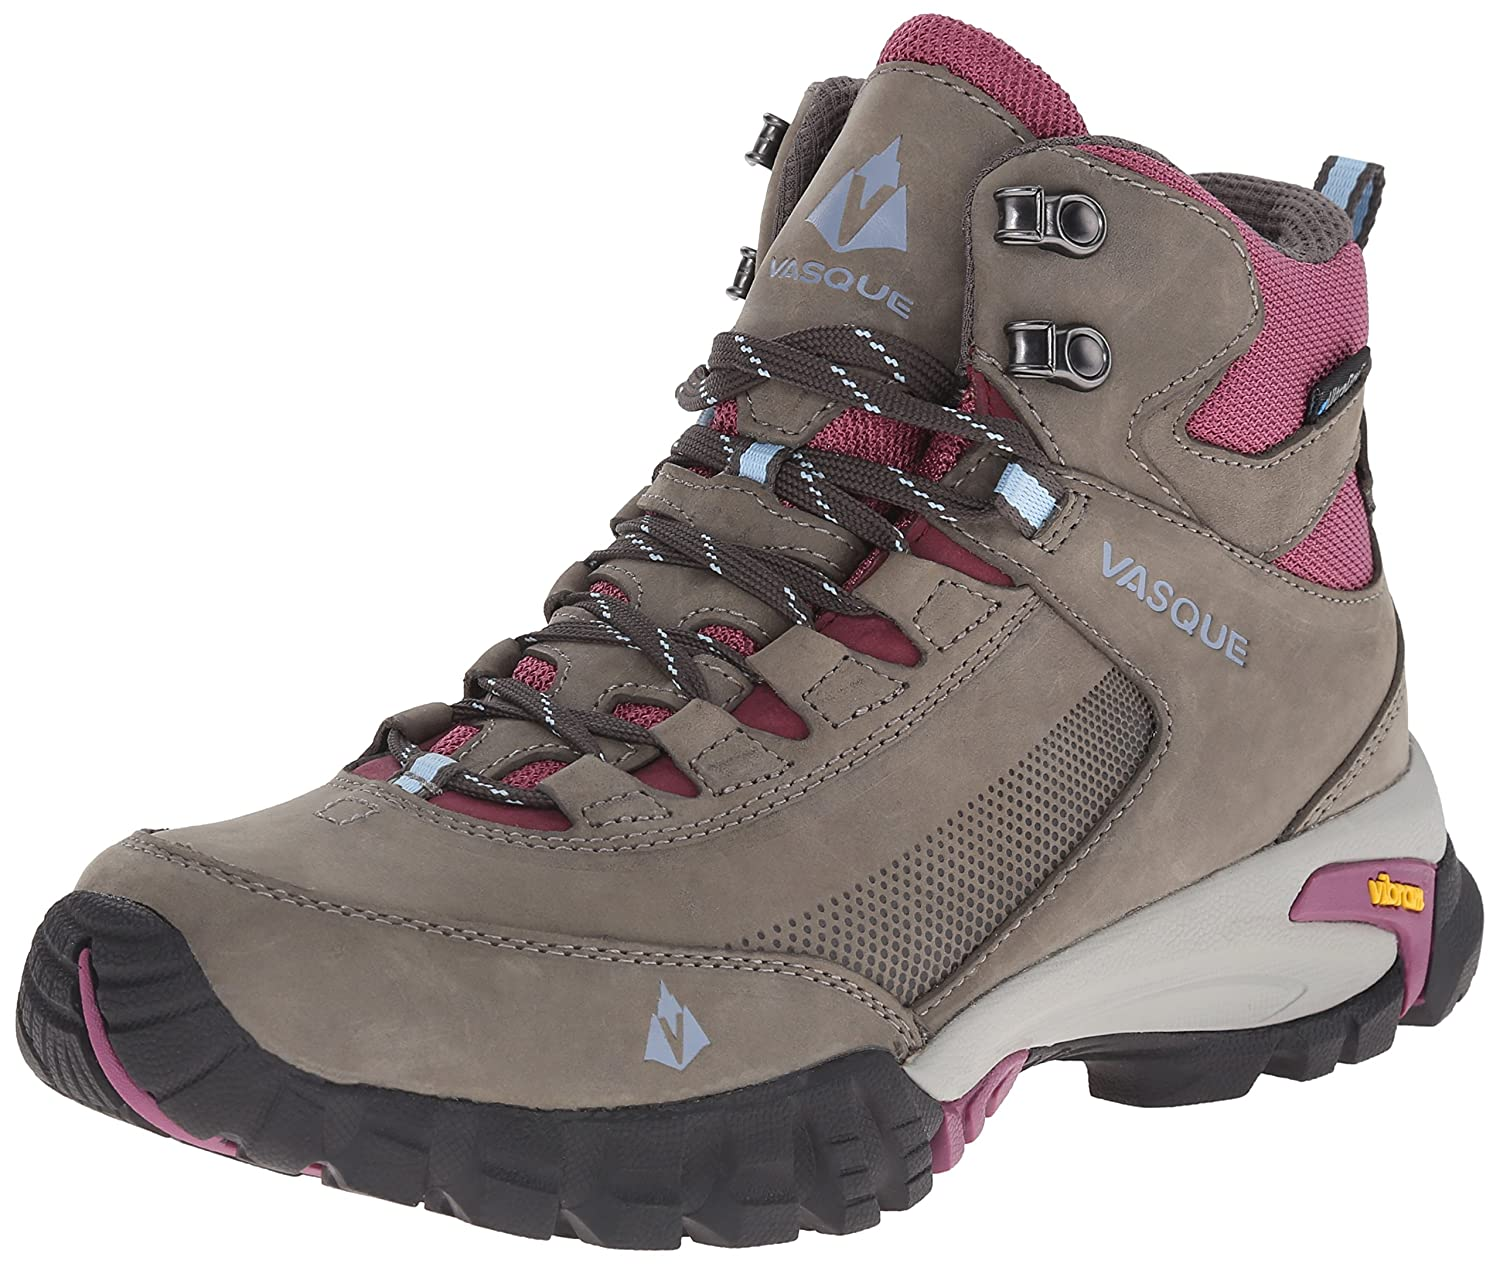 Vasque Women's Talus Trek UltraDry Hiking Boot B00TYJYBOE 10.5 B(M) US|Gargoyle/Damson